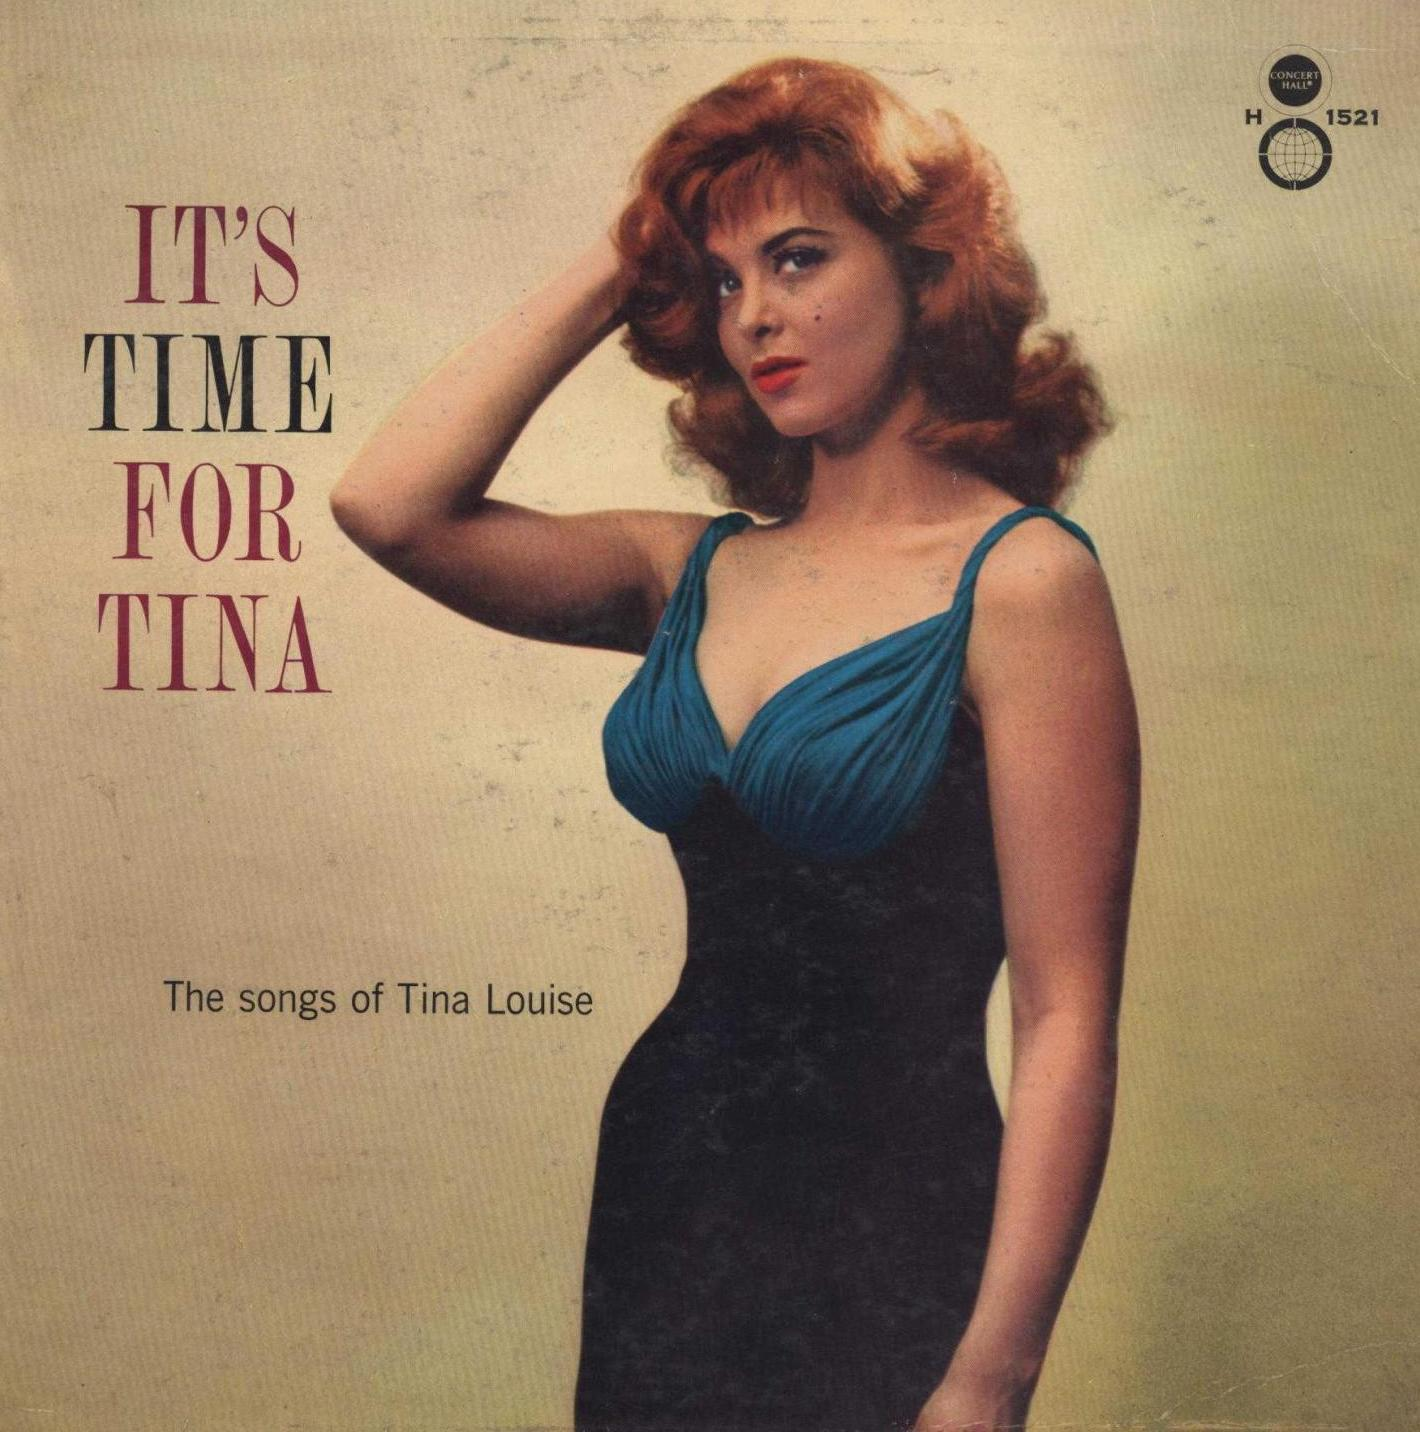 """Tina Louise wears a va-va-voom dress and puts her hand to her red hair next to the title IT'S TIME FOR TINA and the subhead """"The Songs of Tina Louise."""""""